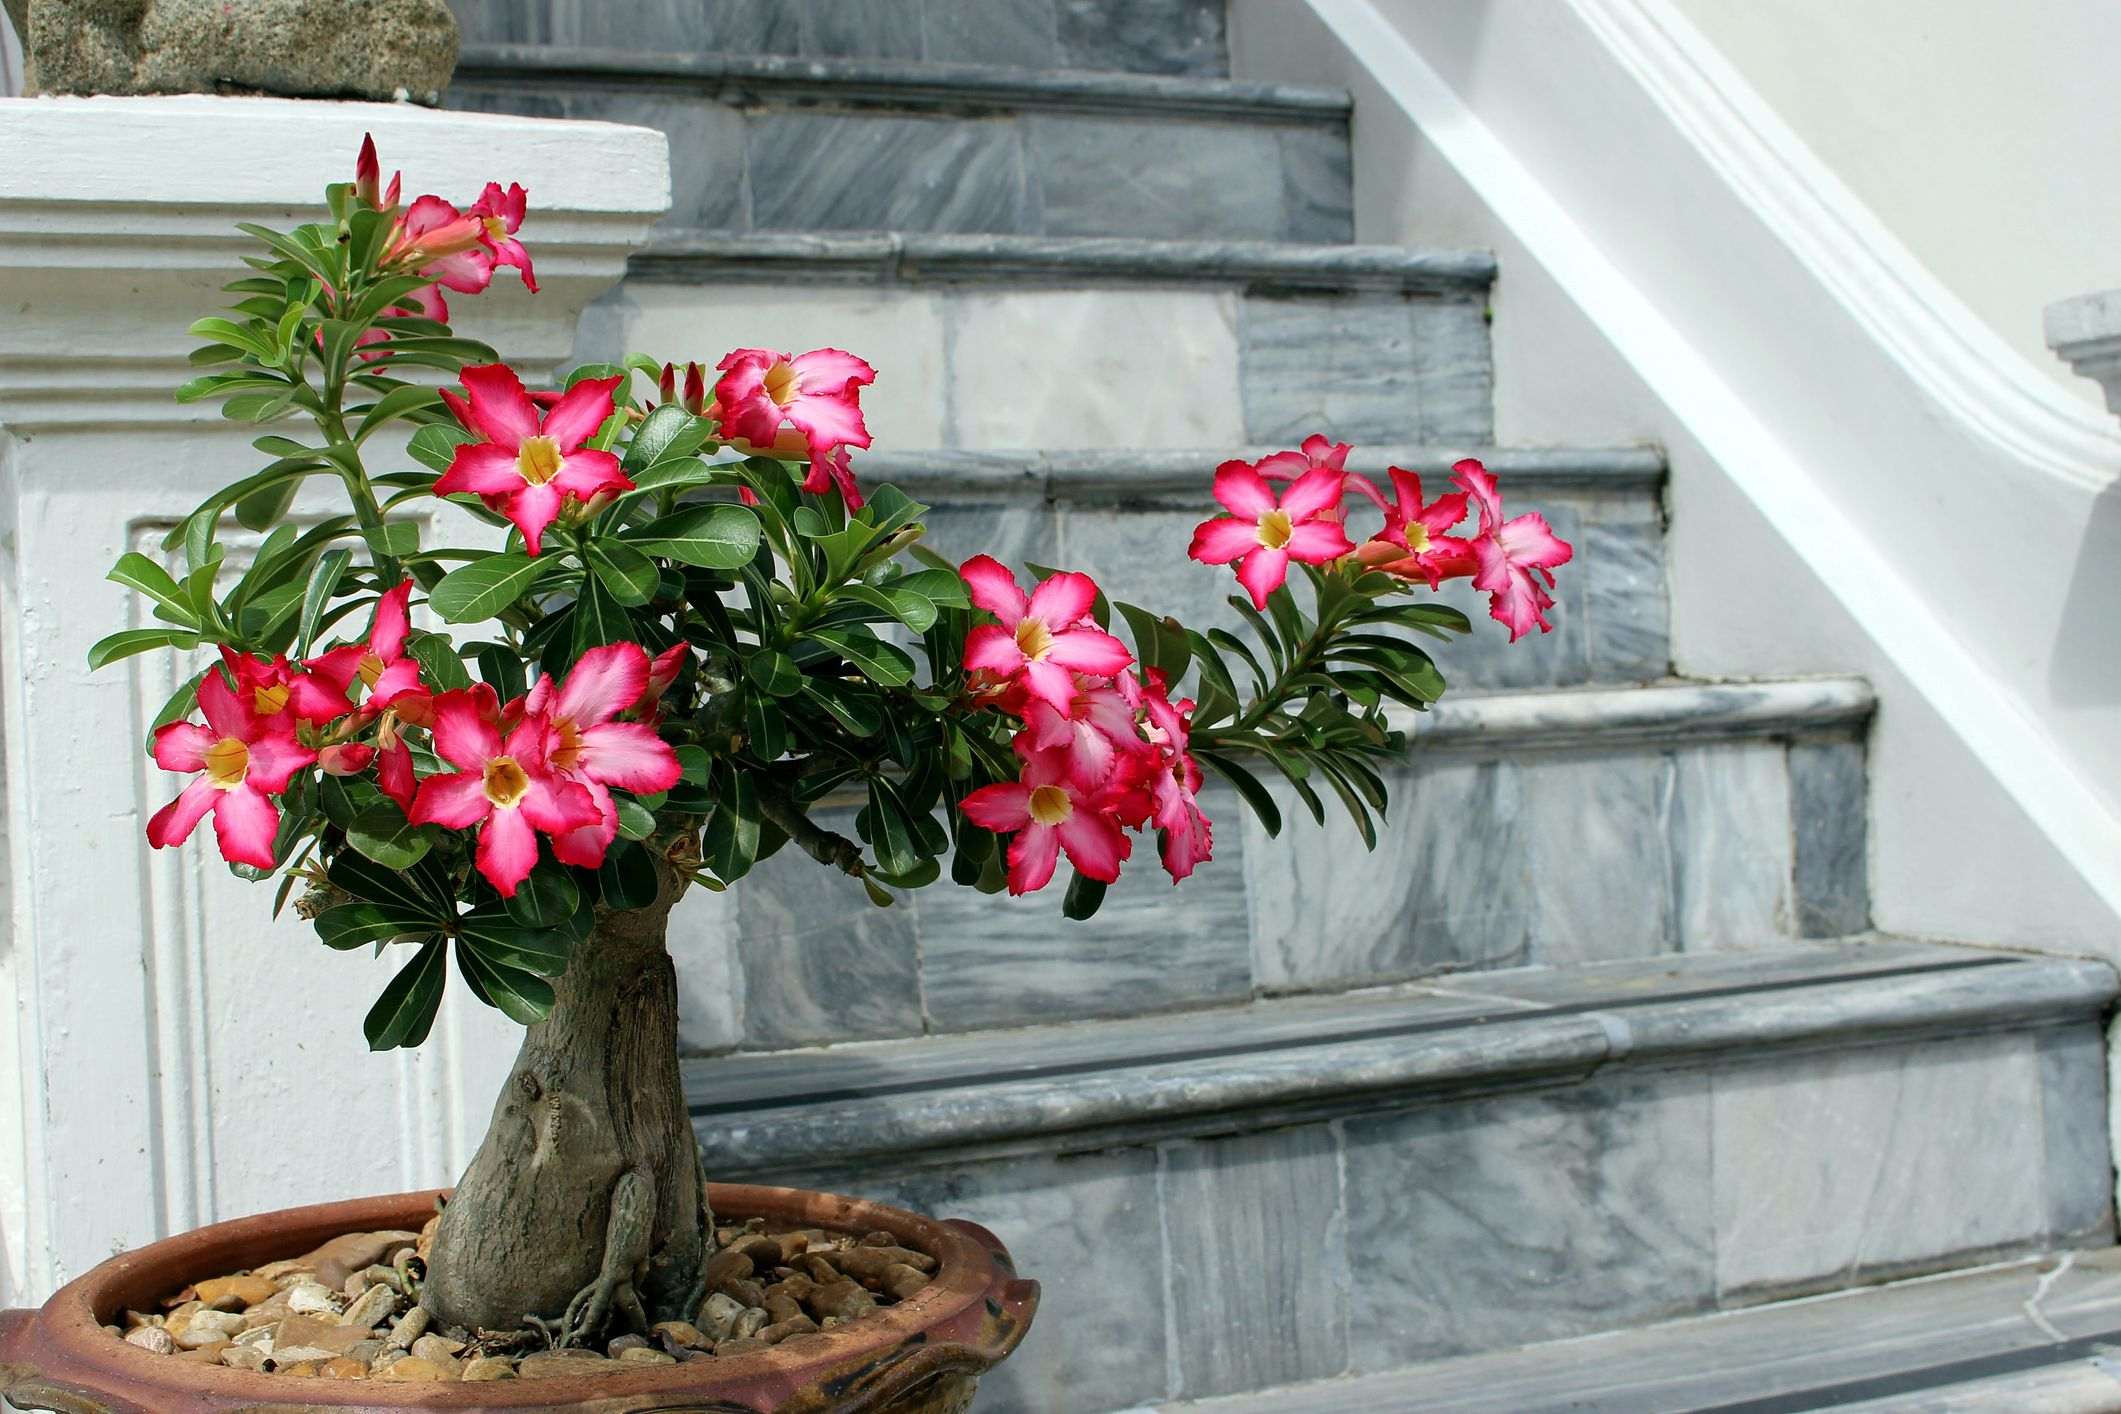 Your Complete Guide to Growing and Caring For a Desert Rose Bonsai